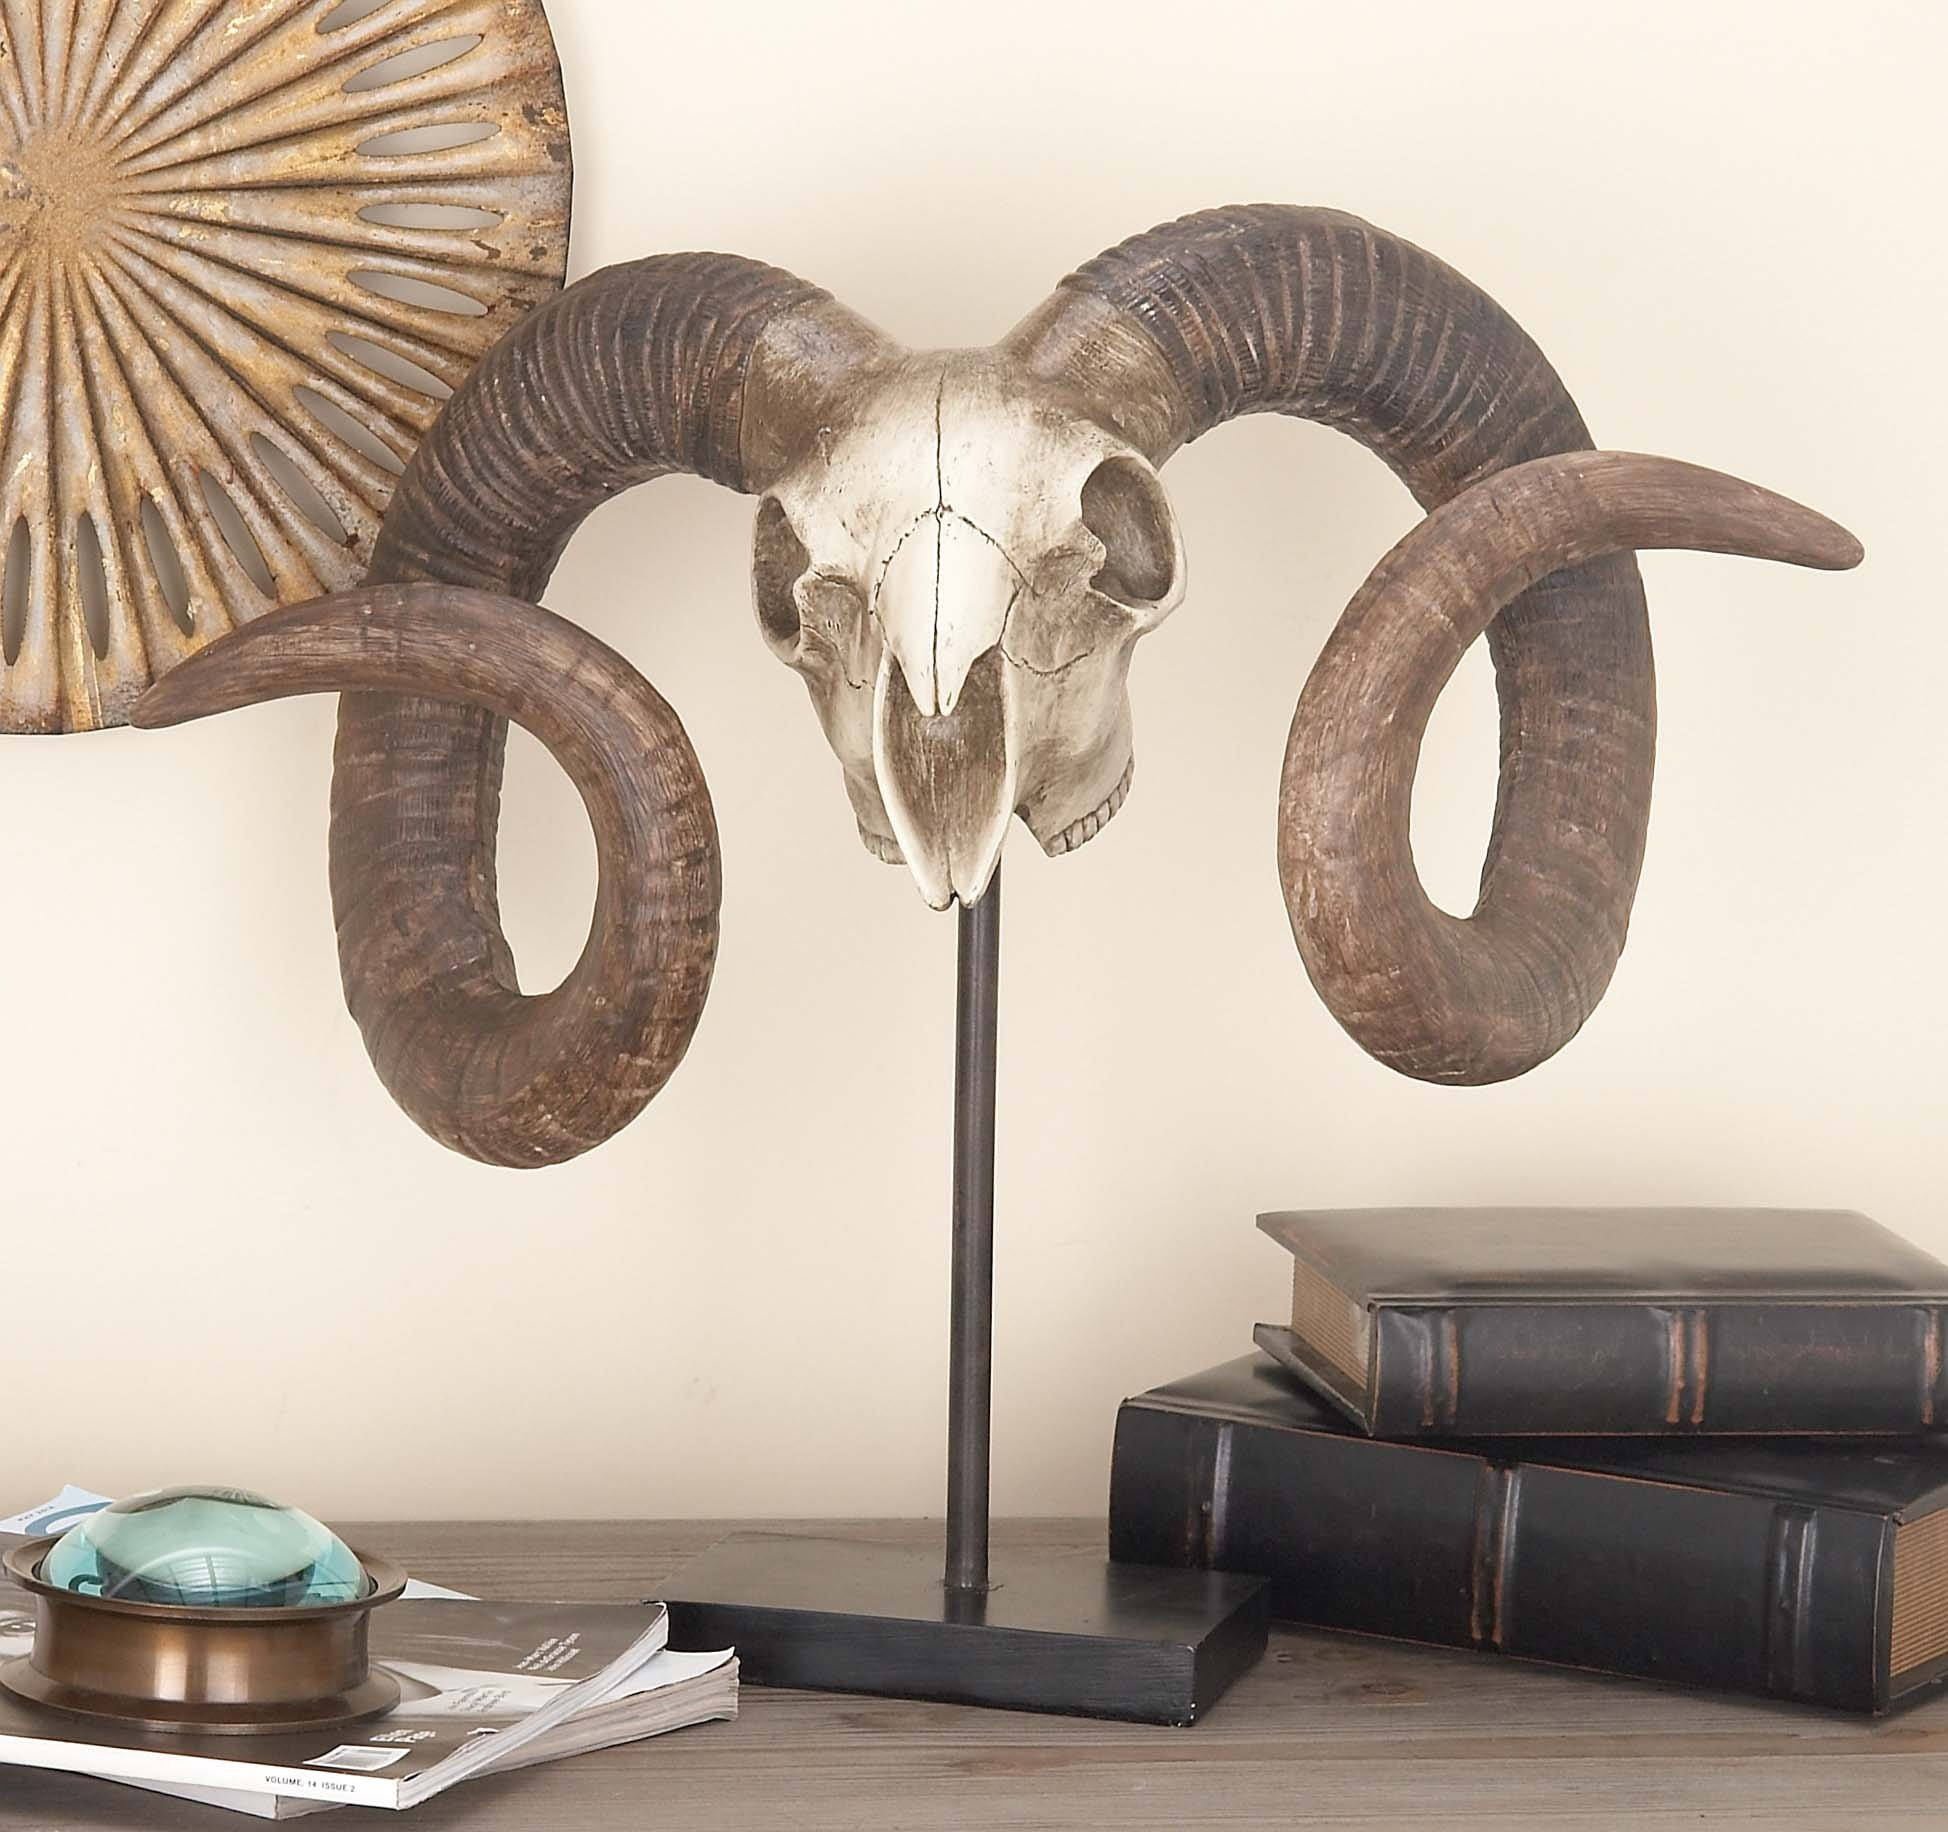 Deco 79 Polystone Sheep Skull on Stand, 22 by 17-Inch by Deco 79